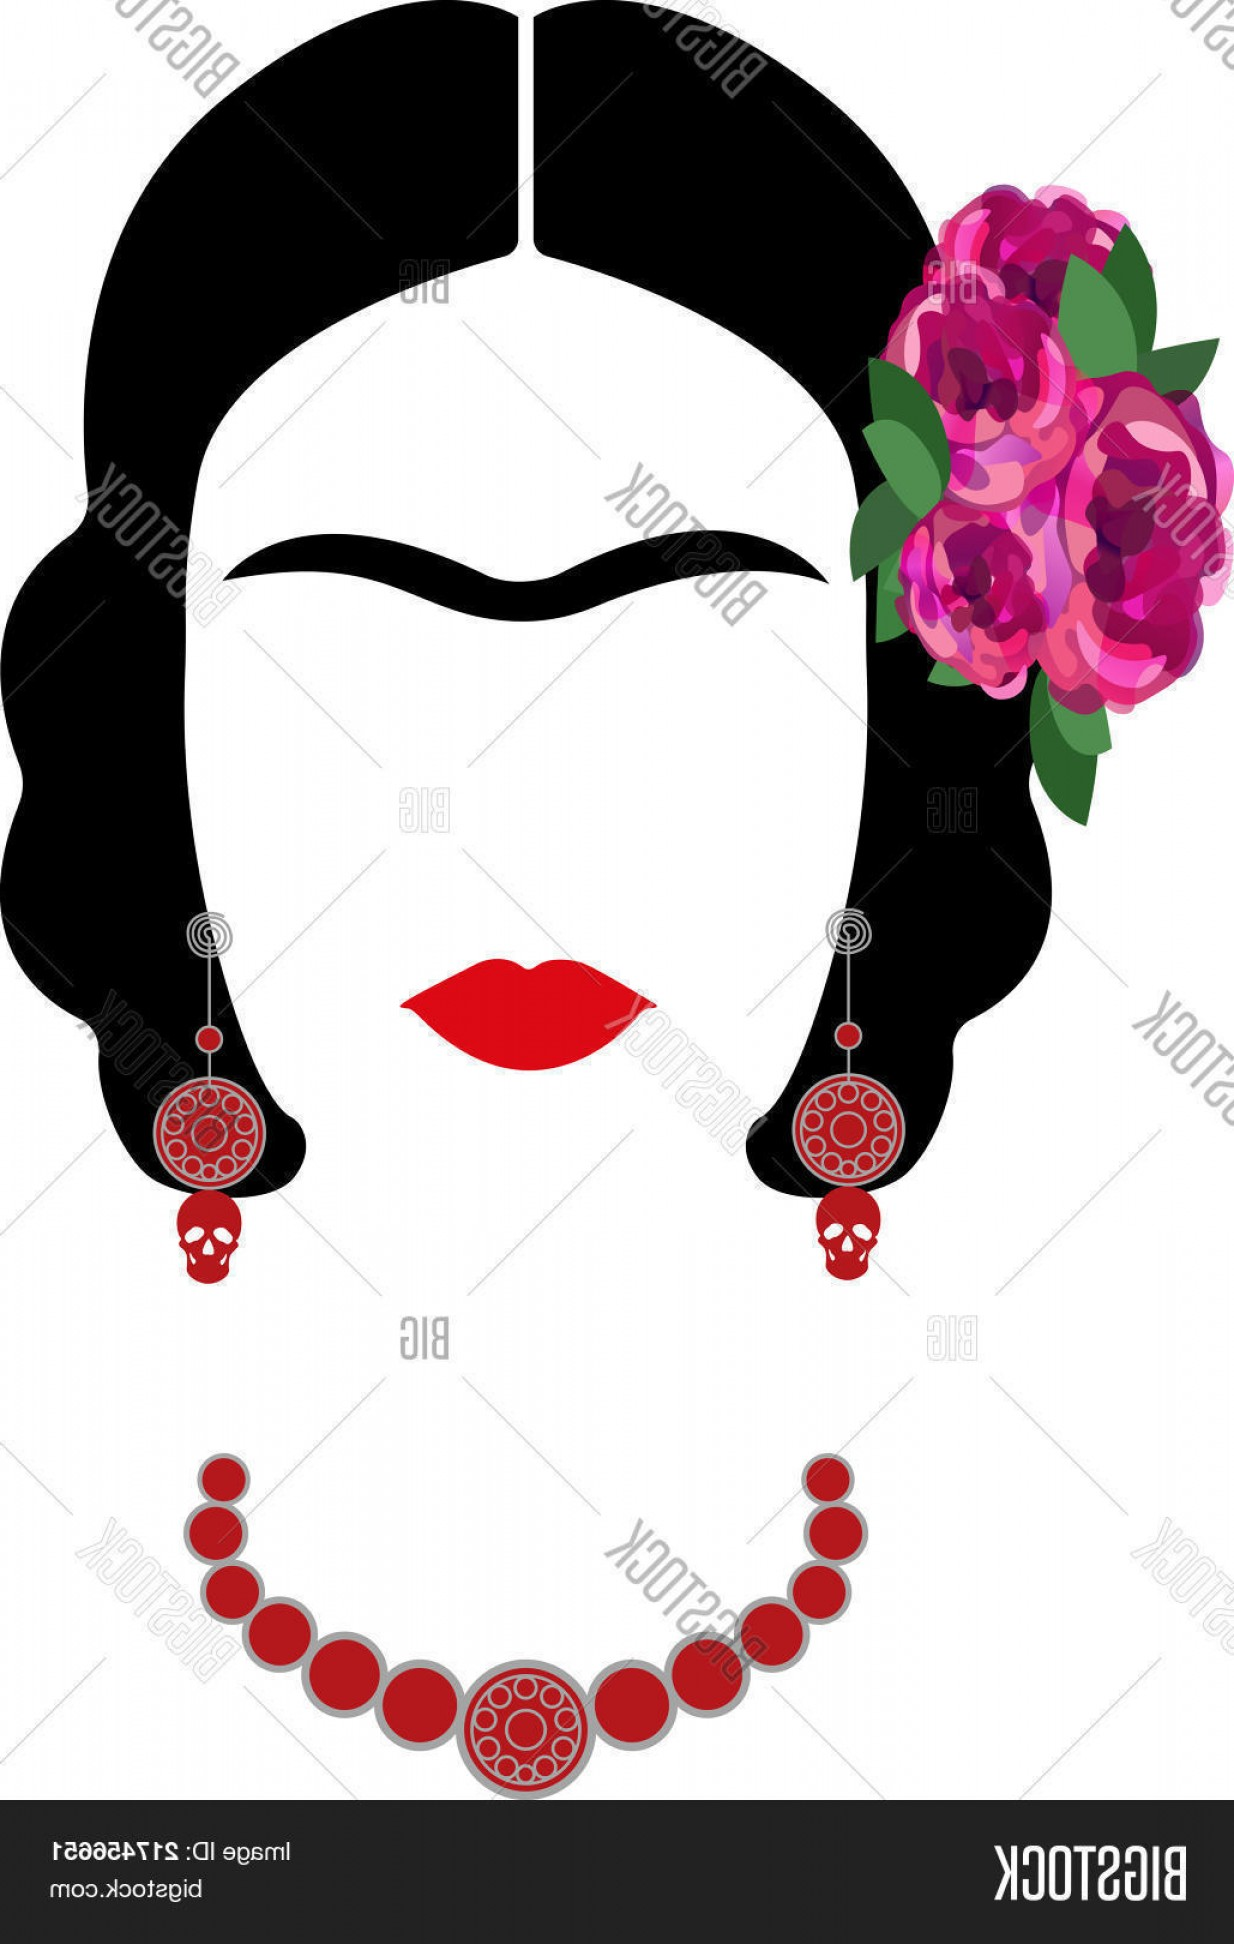 Frida Black And White Vector: Stock Vector Frida Kahlo Vector Portraitc Graphic Interpretation With Mexican Ethnic Jewelry C Isolated Or White Background